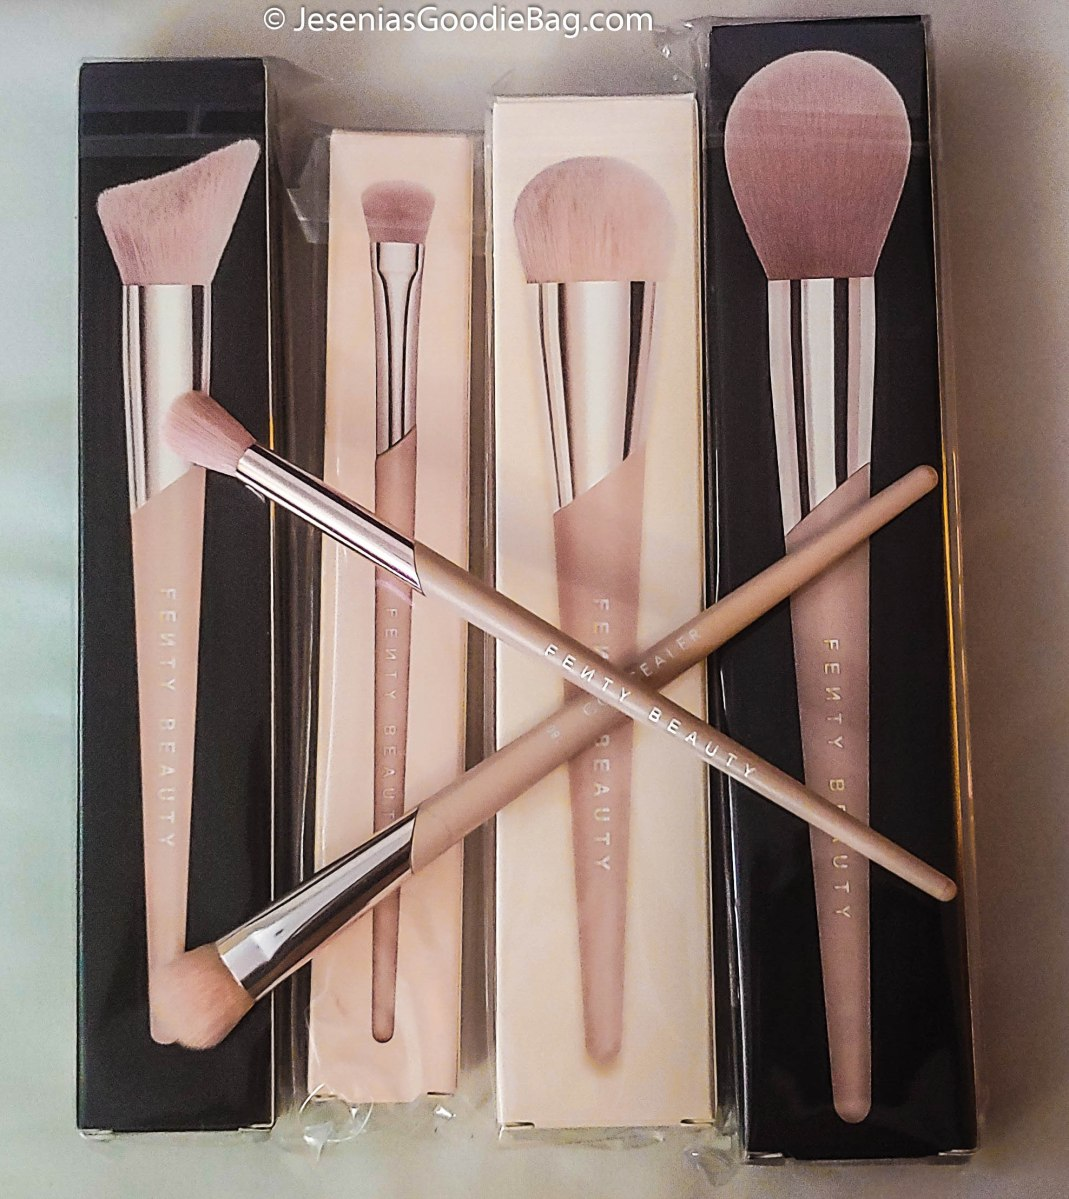 Fenty Beauty by Rihanna x Sephora - Pink Makeup Brushes